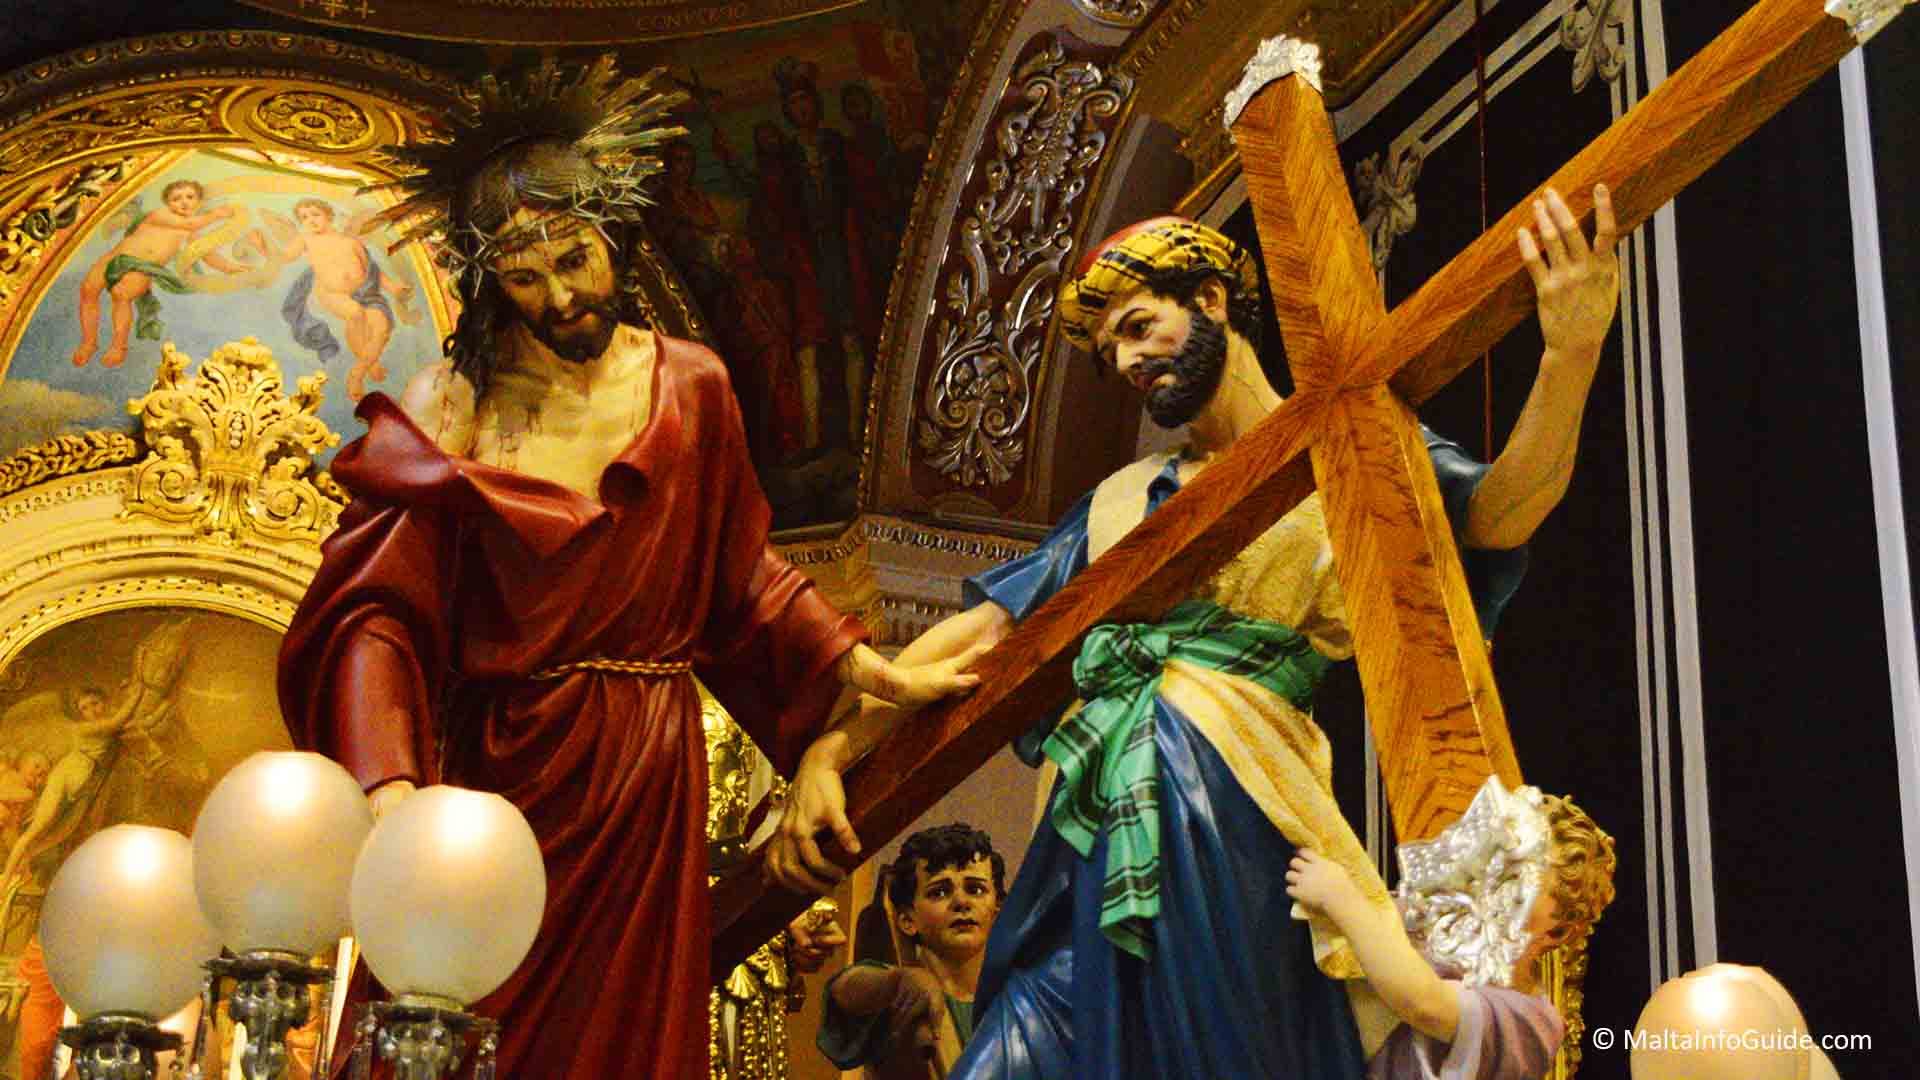 Statues depicting when Simon helped Jesus carry the cross